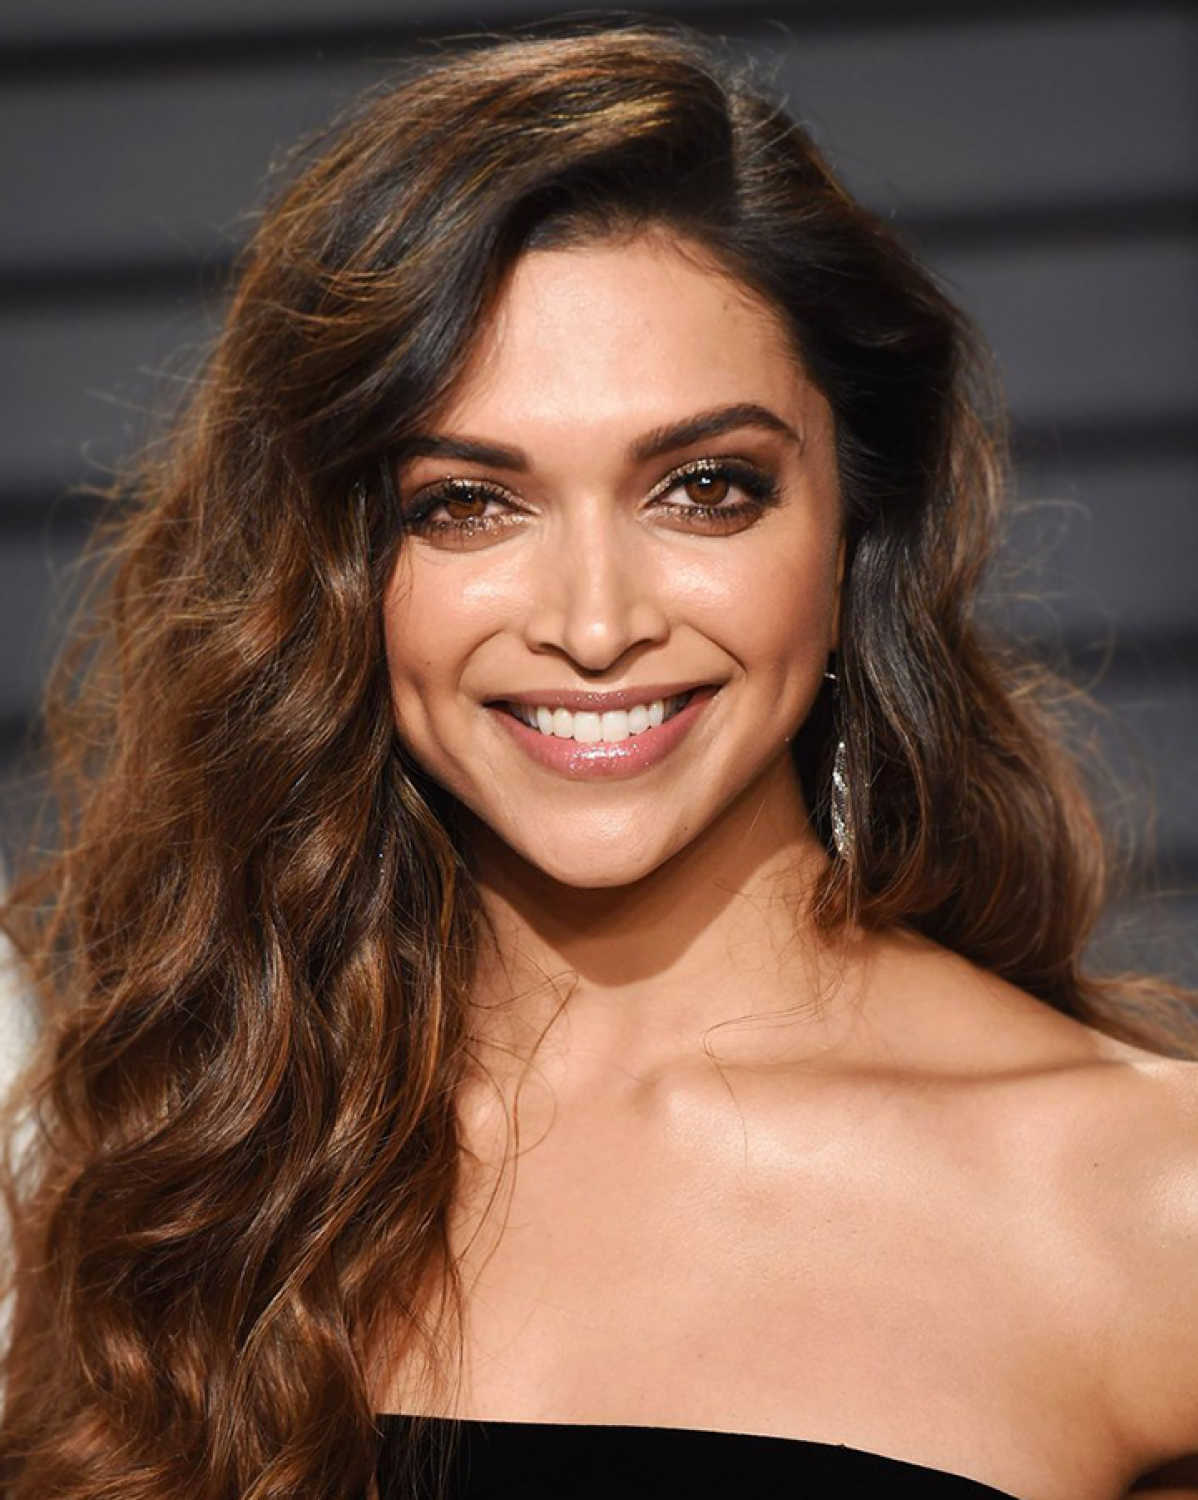 Deepika Padukone biography and information - Cinestaan.com